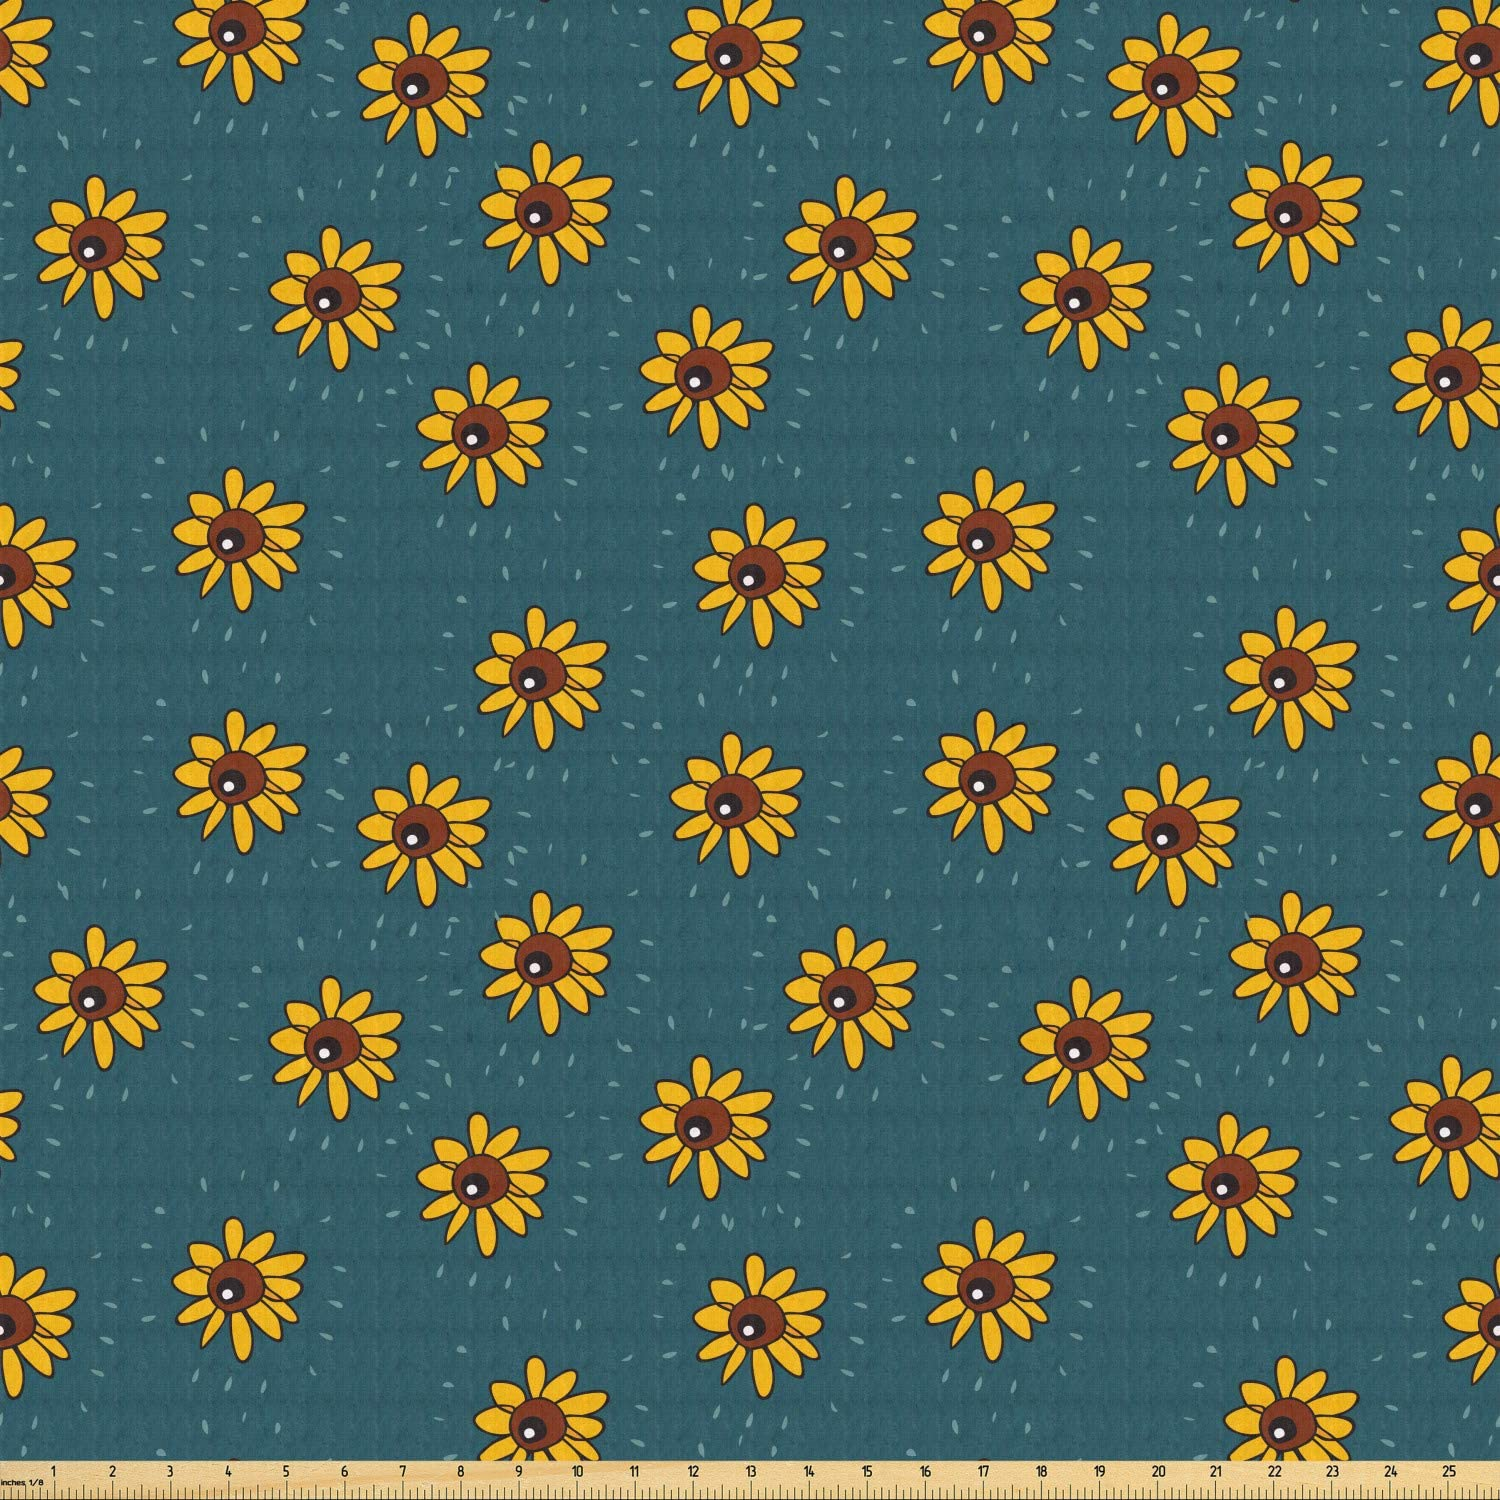 Ambesonne Sunflower Fabric by The Yard, Graphic Flower Kids Nursery Style Meadow Nature Pattern, Stretch Knit Fabric for Clothing Sewing and Arts Crafts, 1 Yard, Teal Yellow